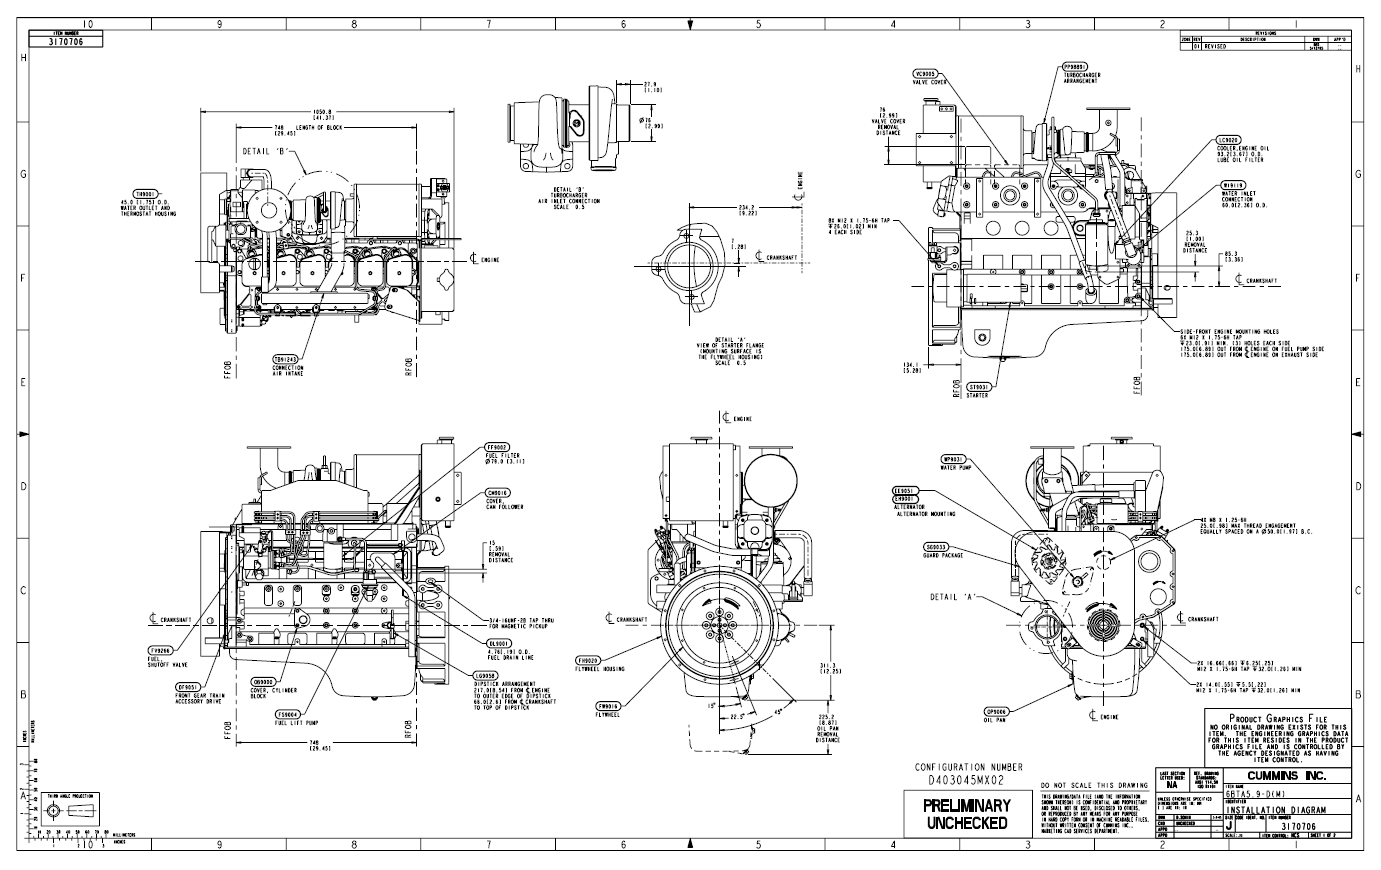 Cummins Engine Drawings Seaboard Marine